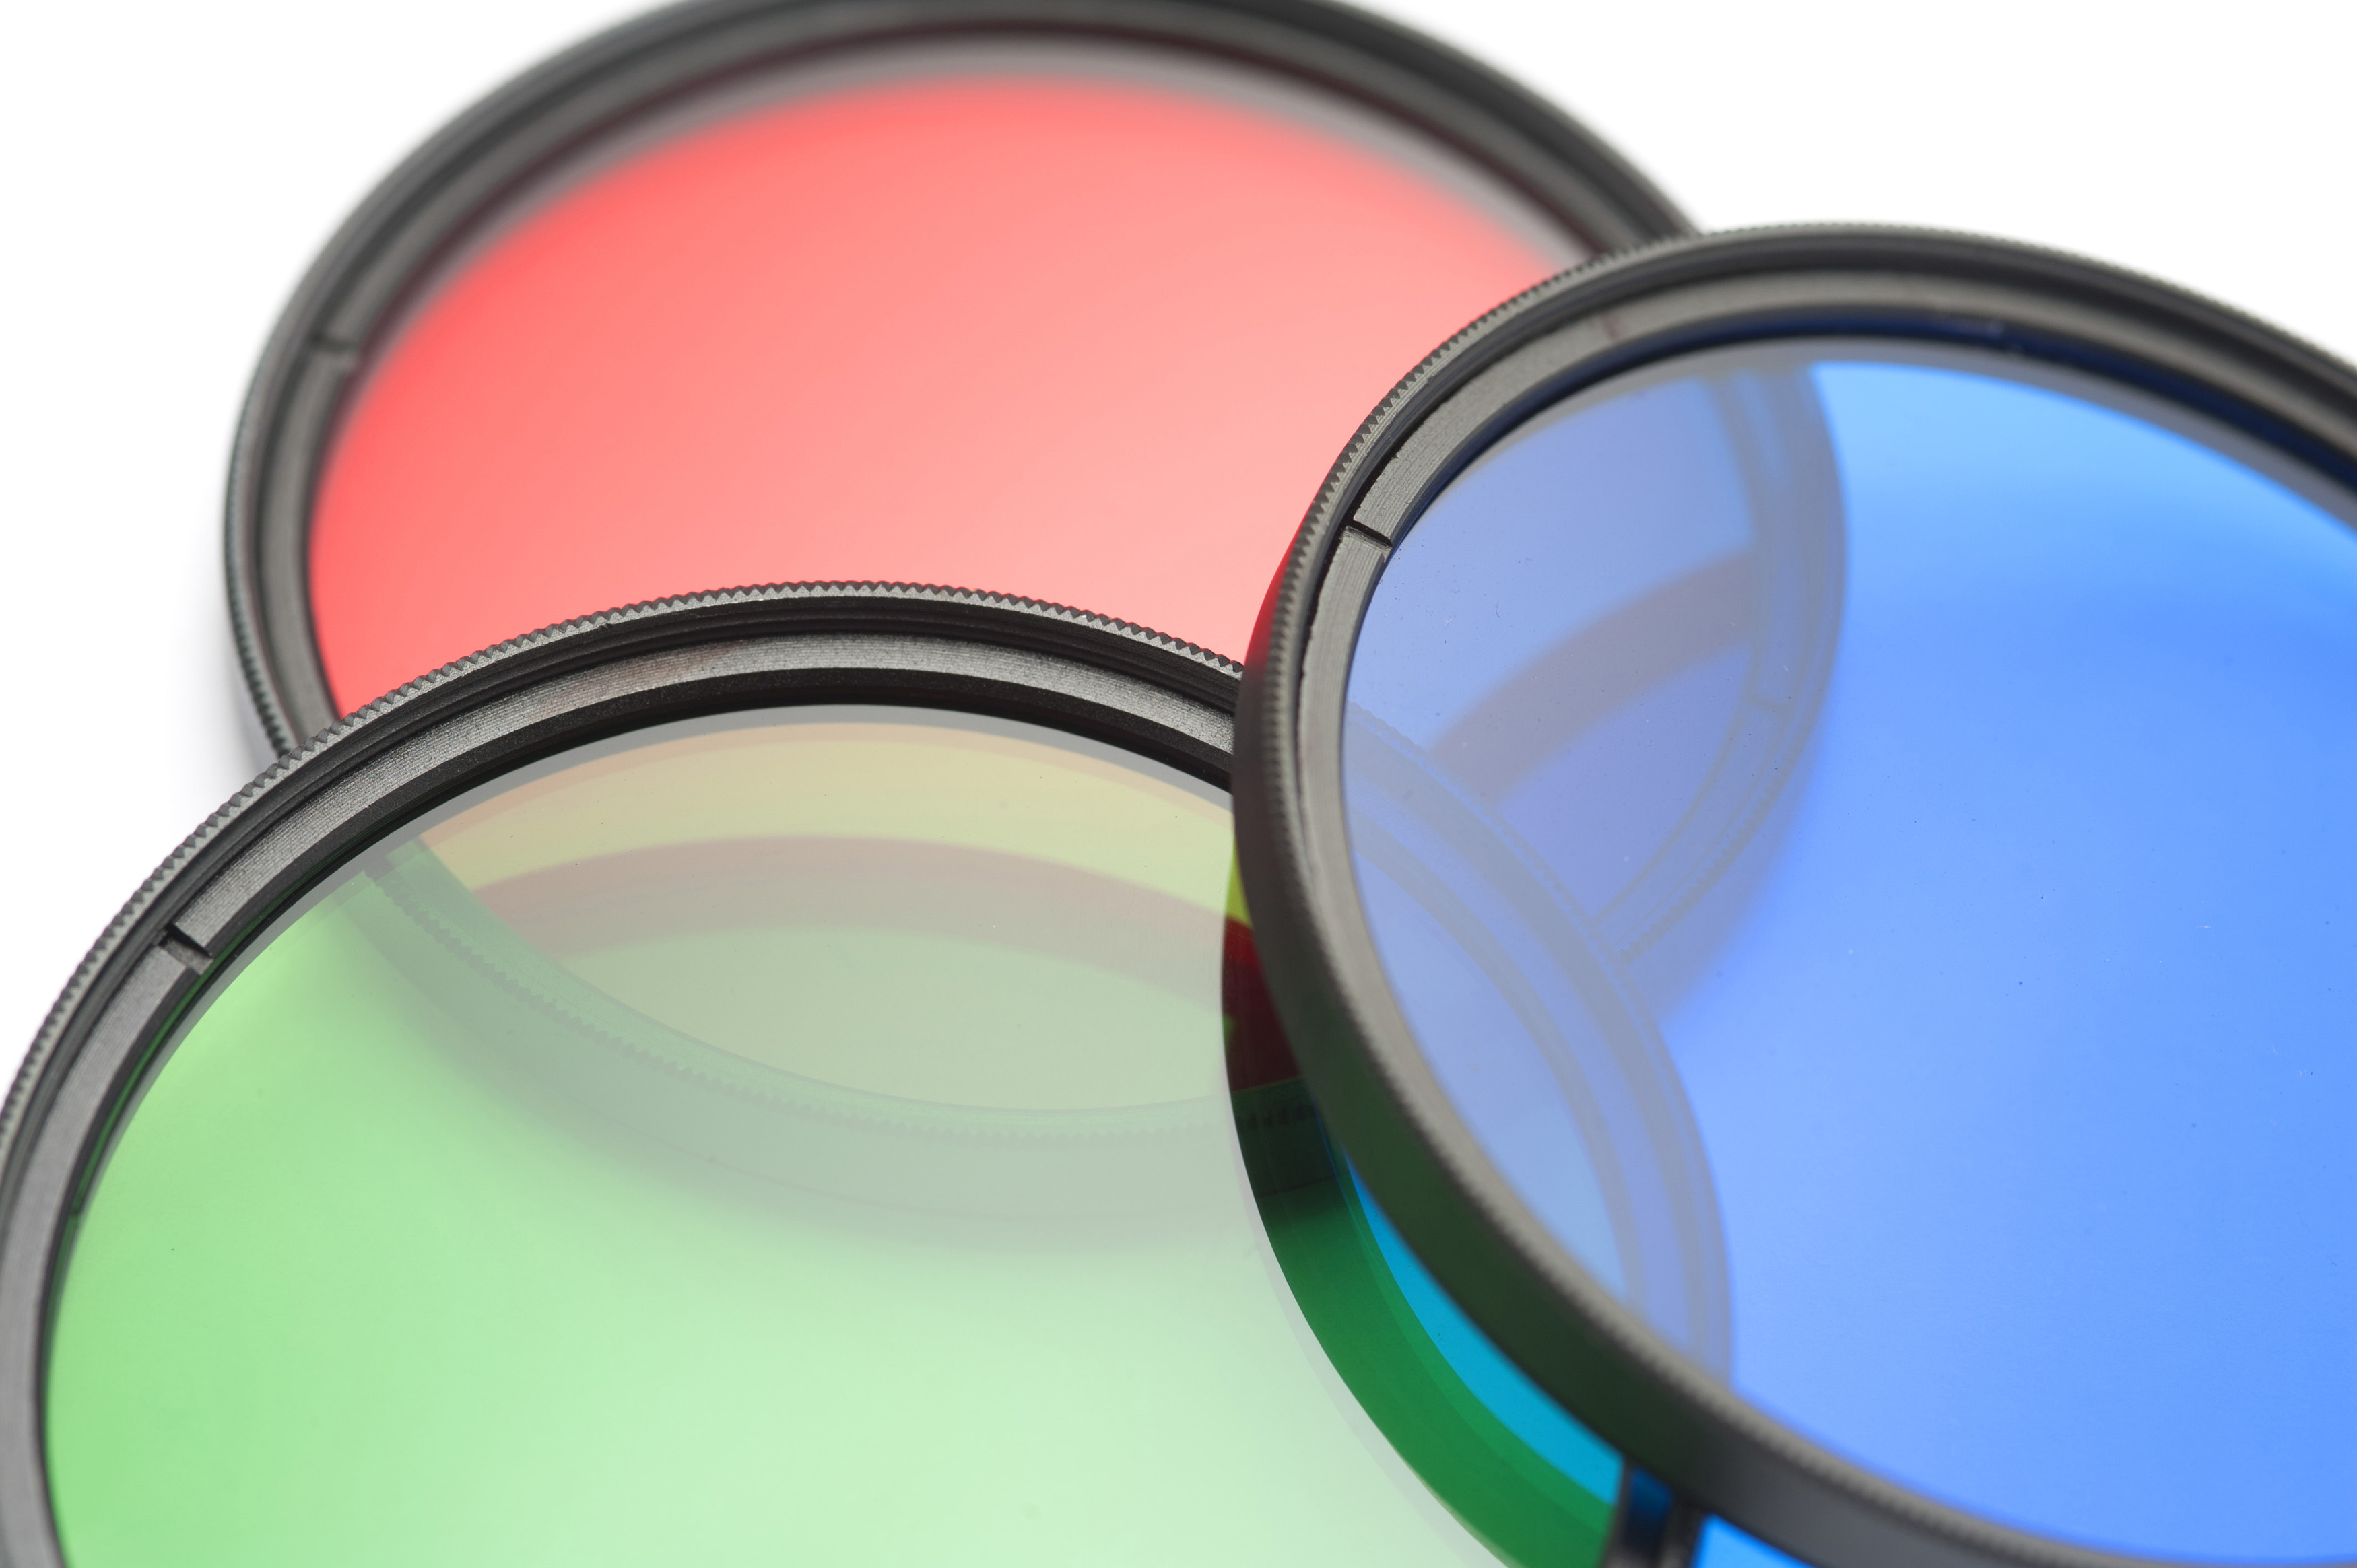 Set of circular filters showing the primary colors red, green and blue arranged to overlap on a white background, close up view